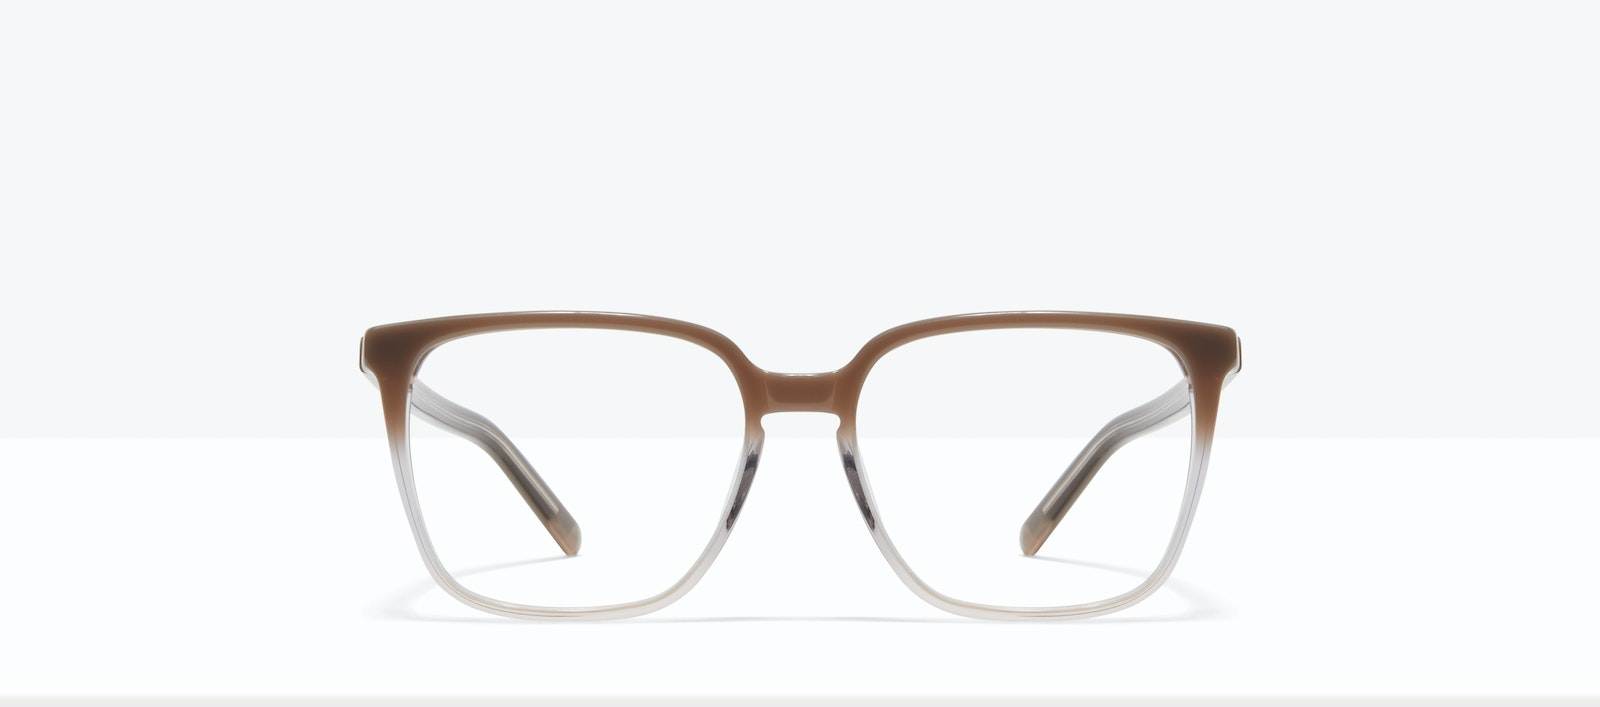 Affordable Fashion Glasses Square Eyeglasses Women Runway S Smokey Ombré Front